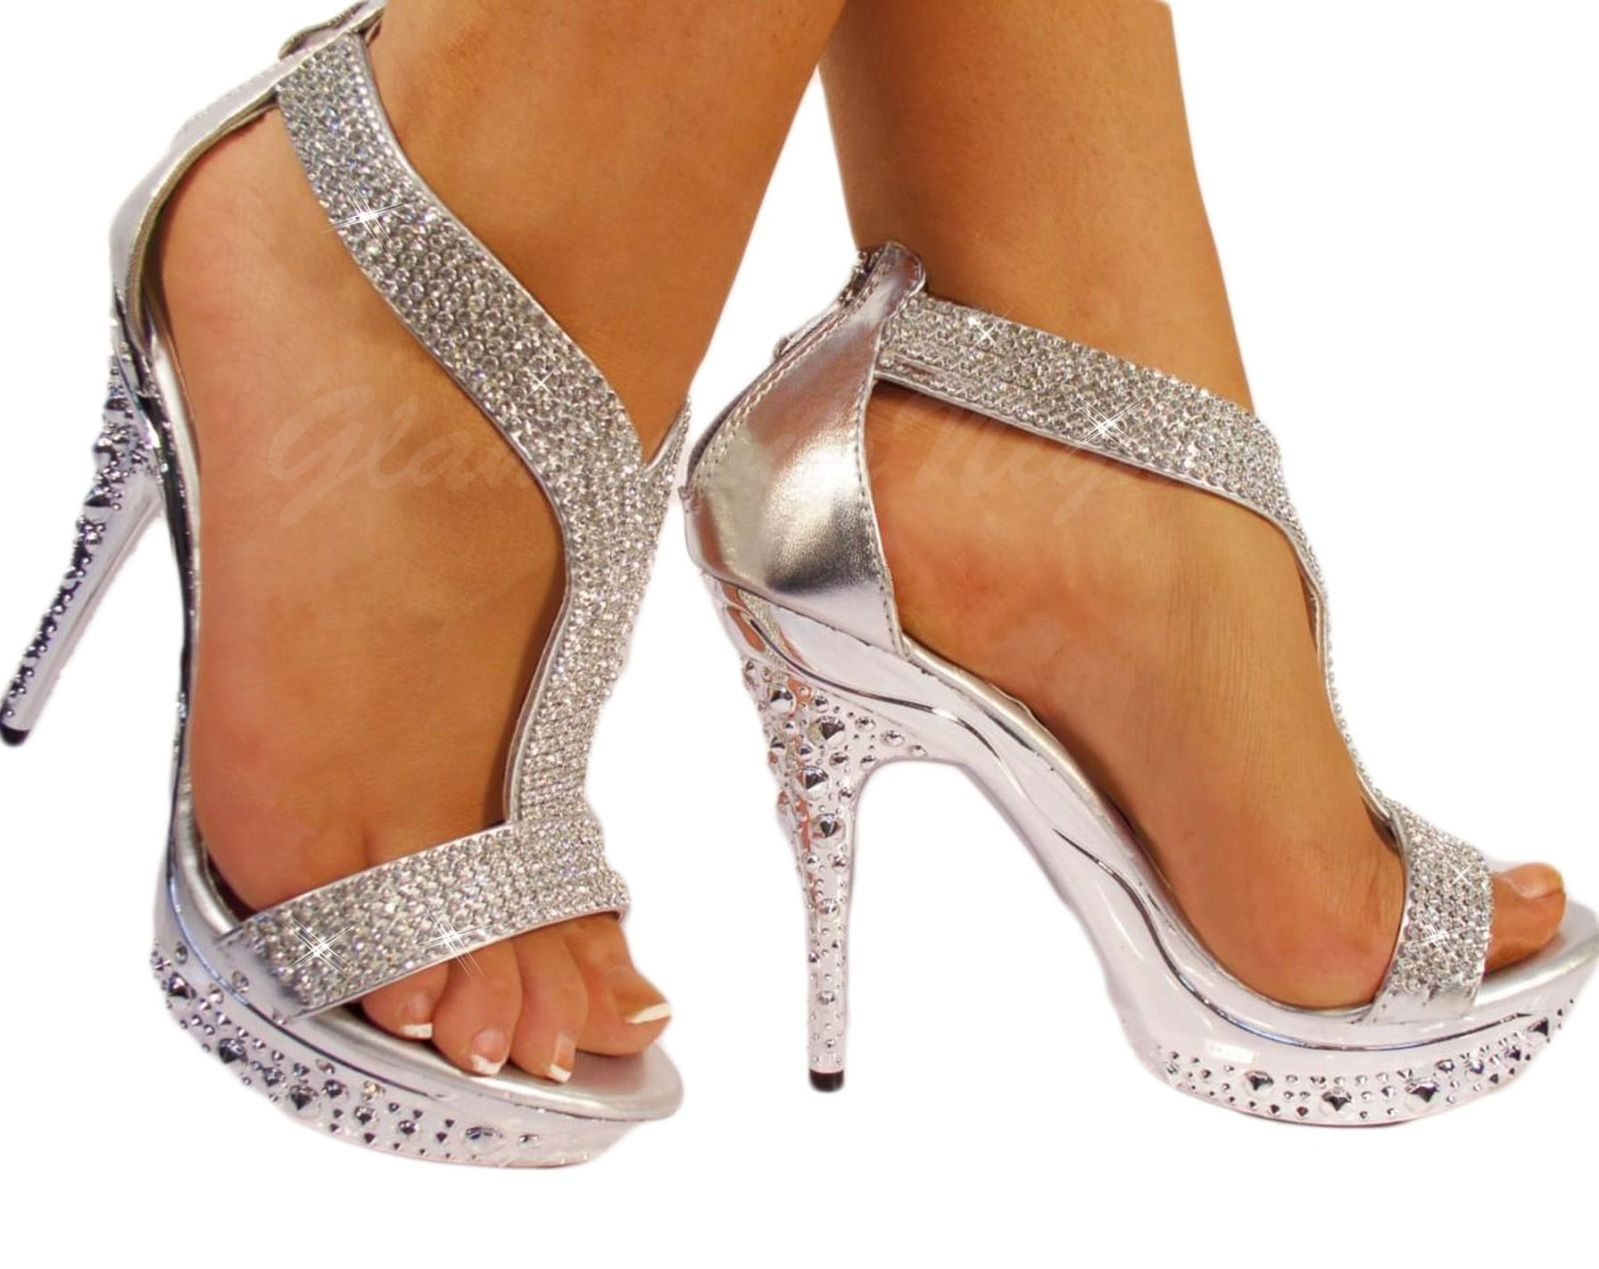 Details about SILVER DIAMANTE ENCRUSTED SANDAL, HIGH HEEL ...